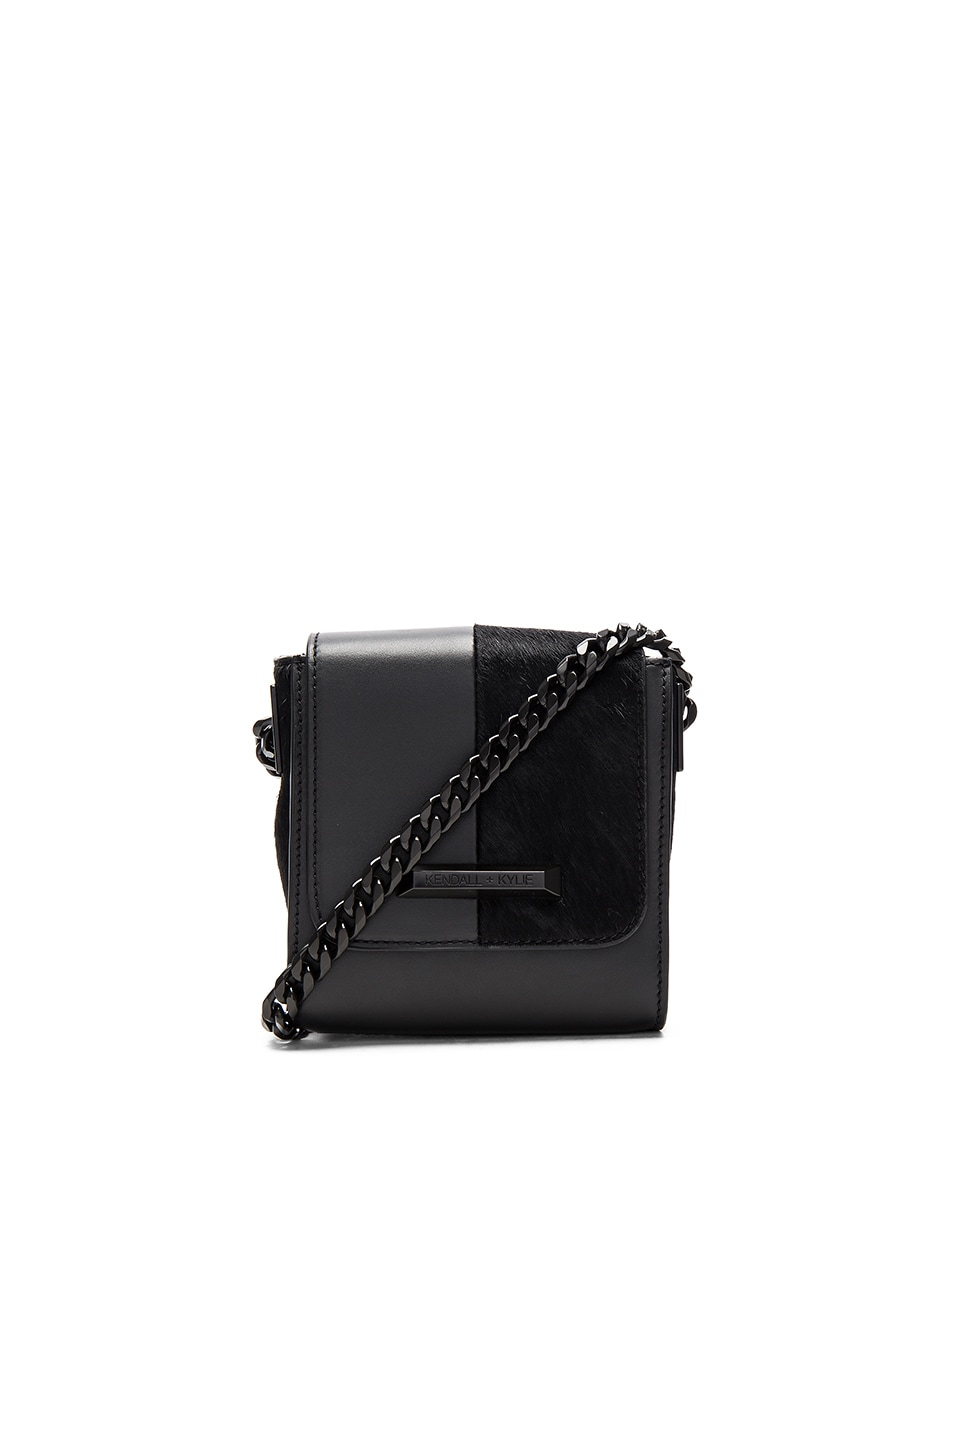 KENDALL + KYLIE Violet Crossbody in Black Smooth Leather & Pony Hair